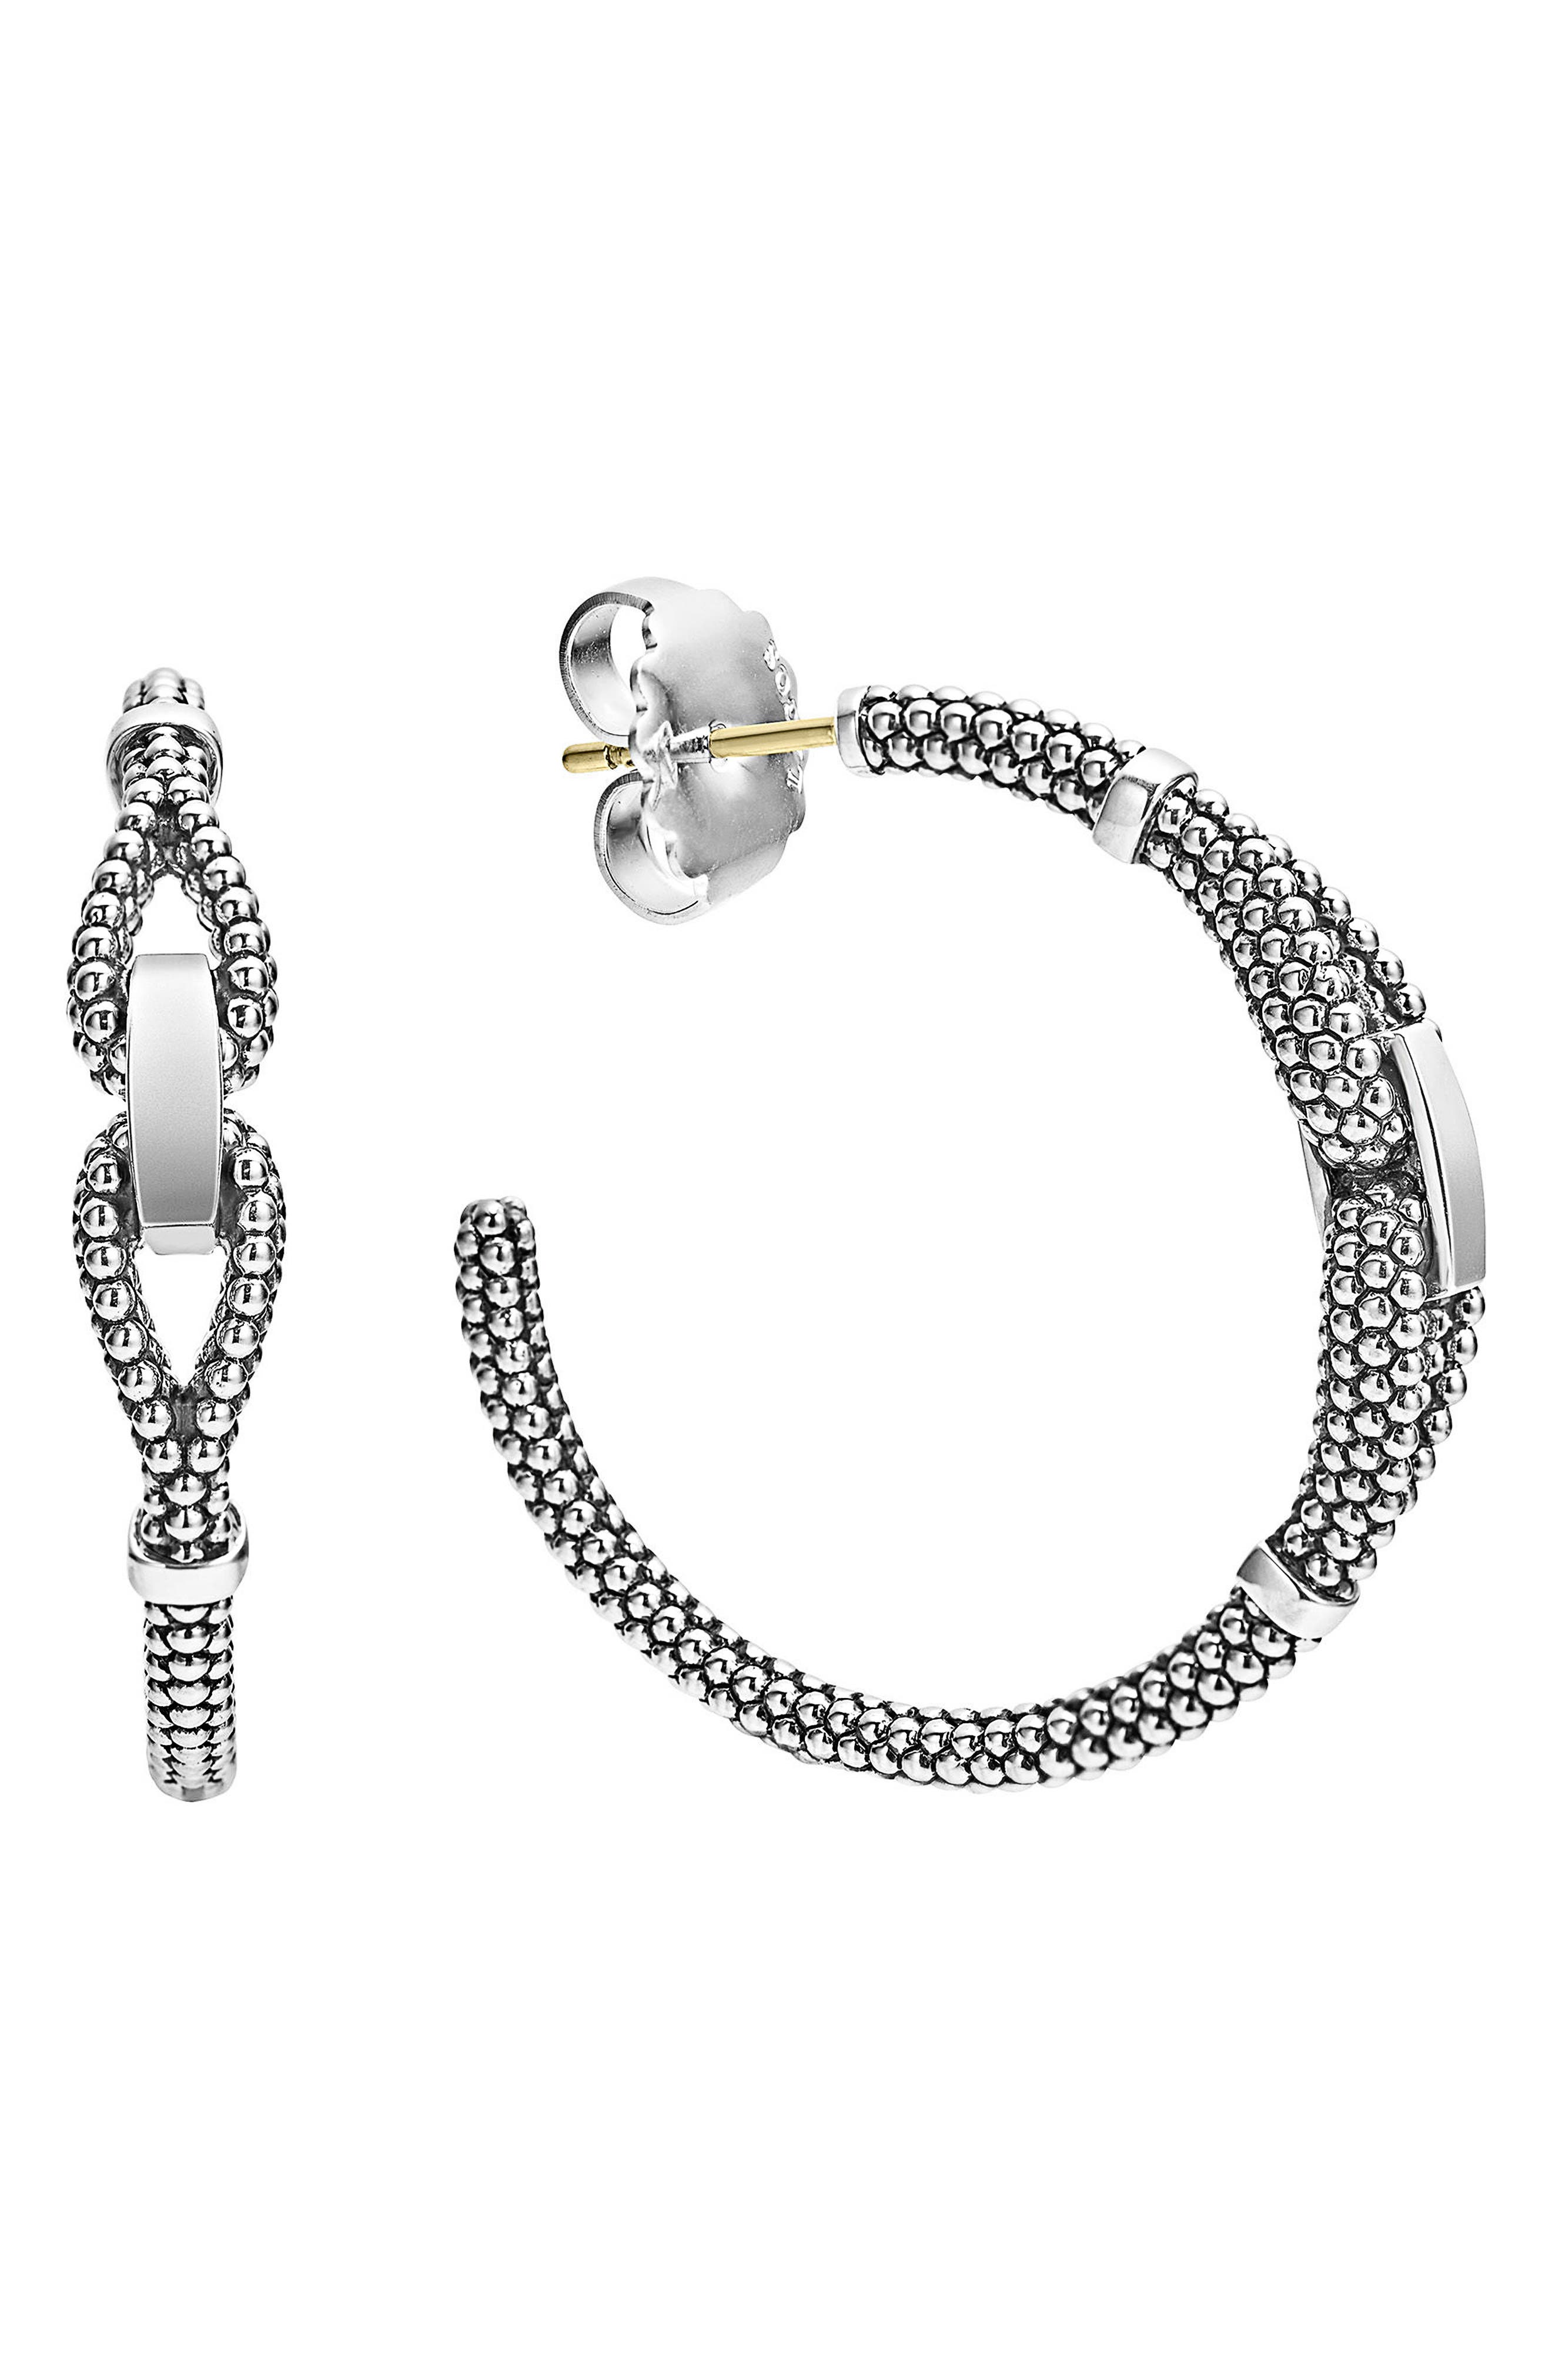 LAGOS Derby Caviar Hoop Earrings